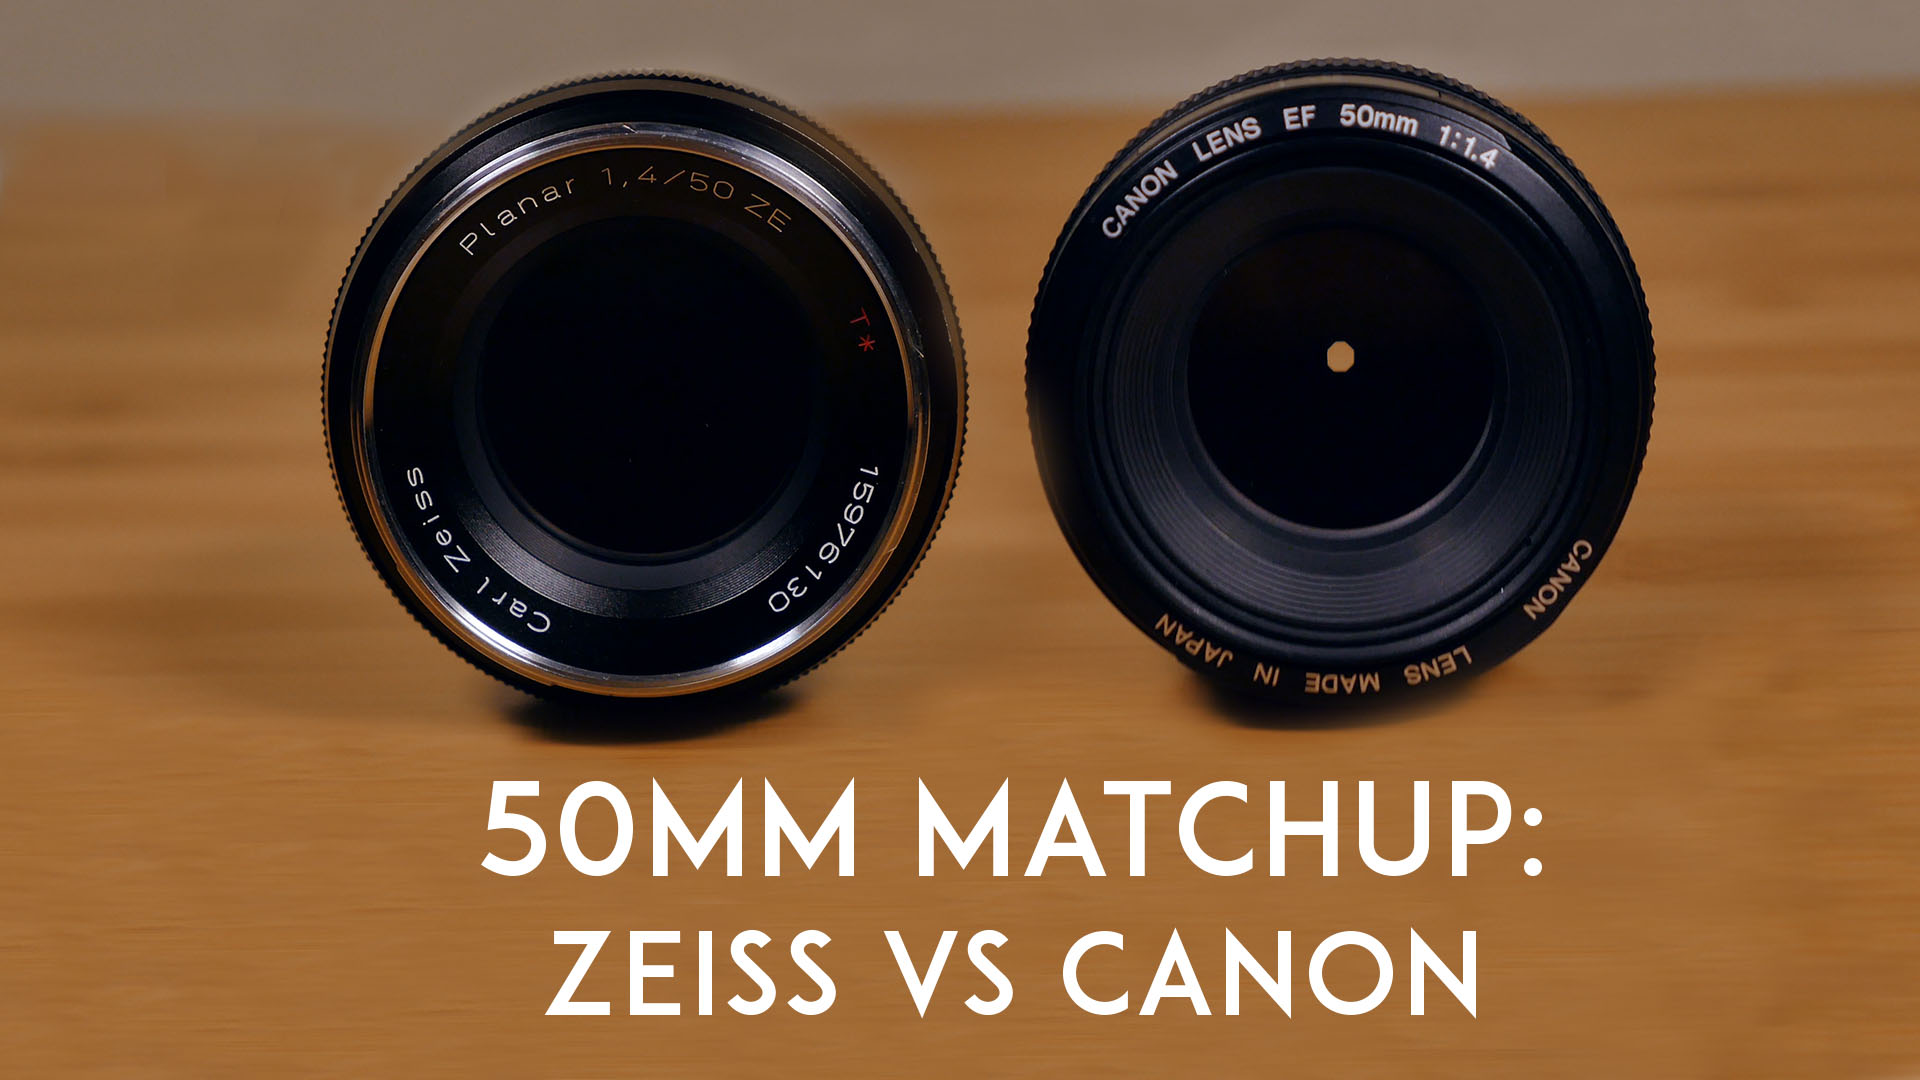 zeiss ze 50mm f1 4 vs canon ef 50mm f1 4 youtube thumbnail. Black Bedroom Furniture Sets. Home Design Ideas